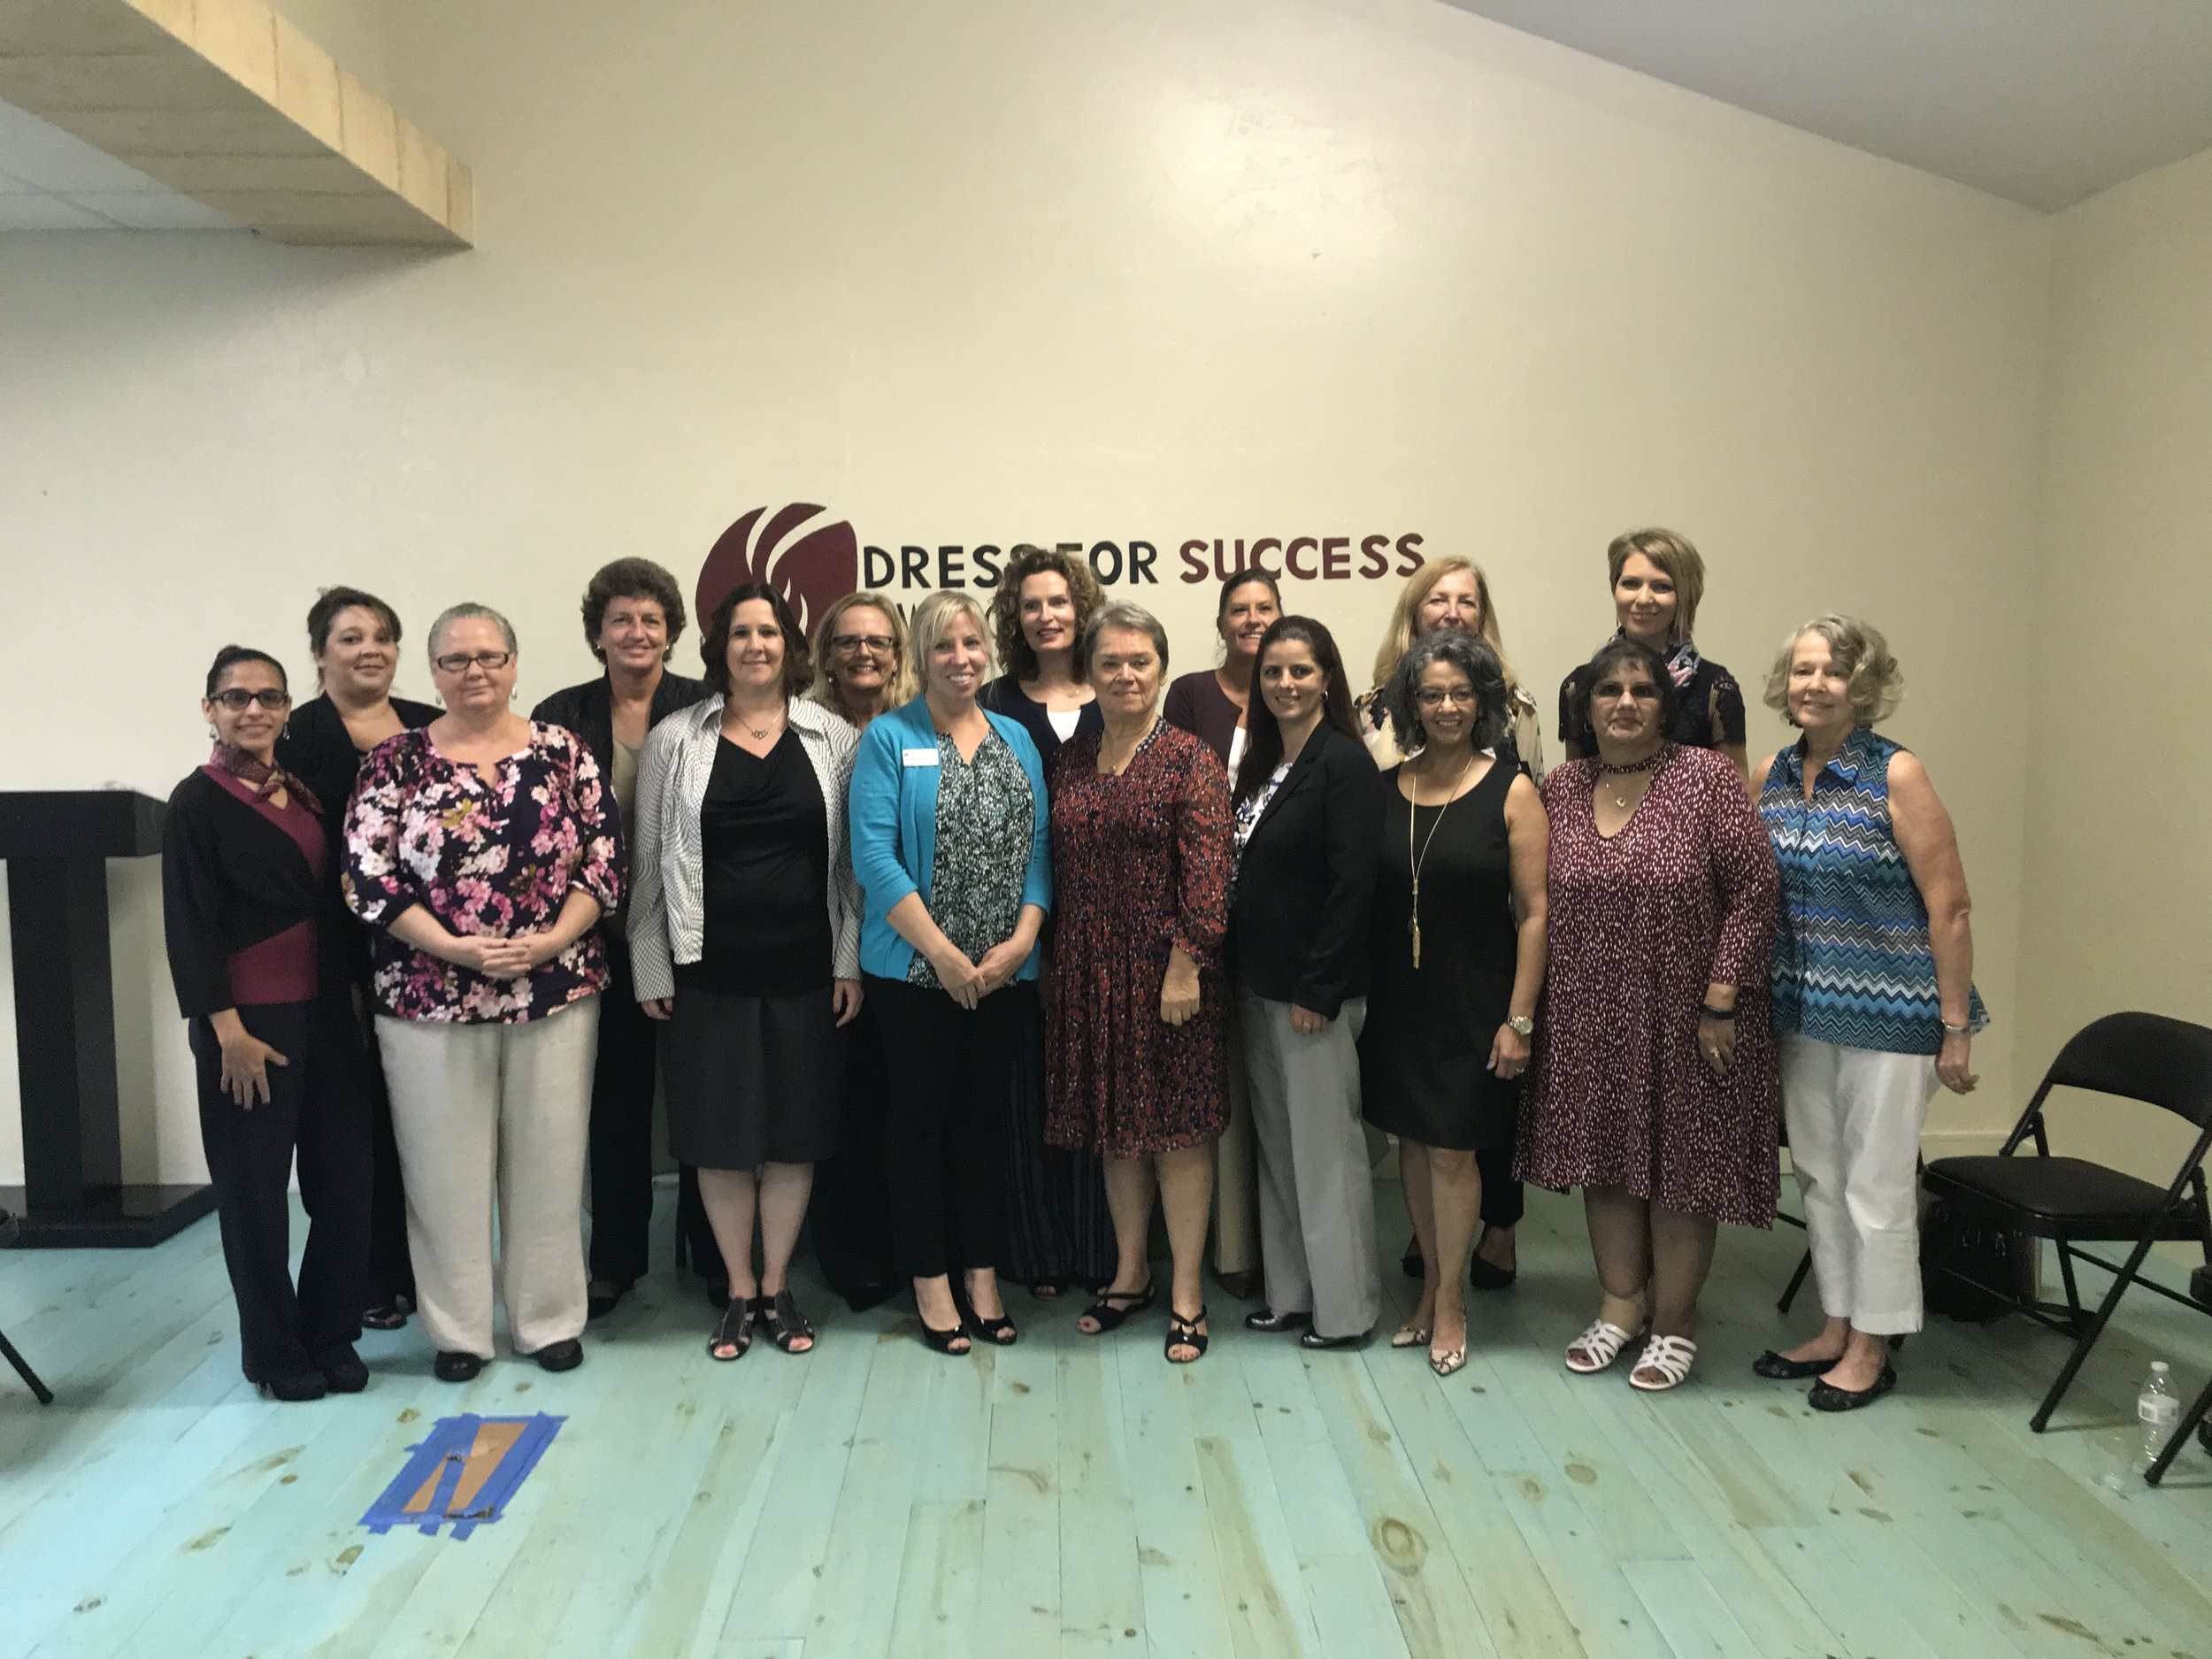 Dress for Success SW Florida WETES Graduation - Winter Class in Fort Myers, FL on February 21, 2018.